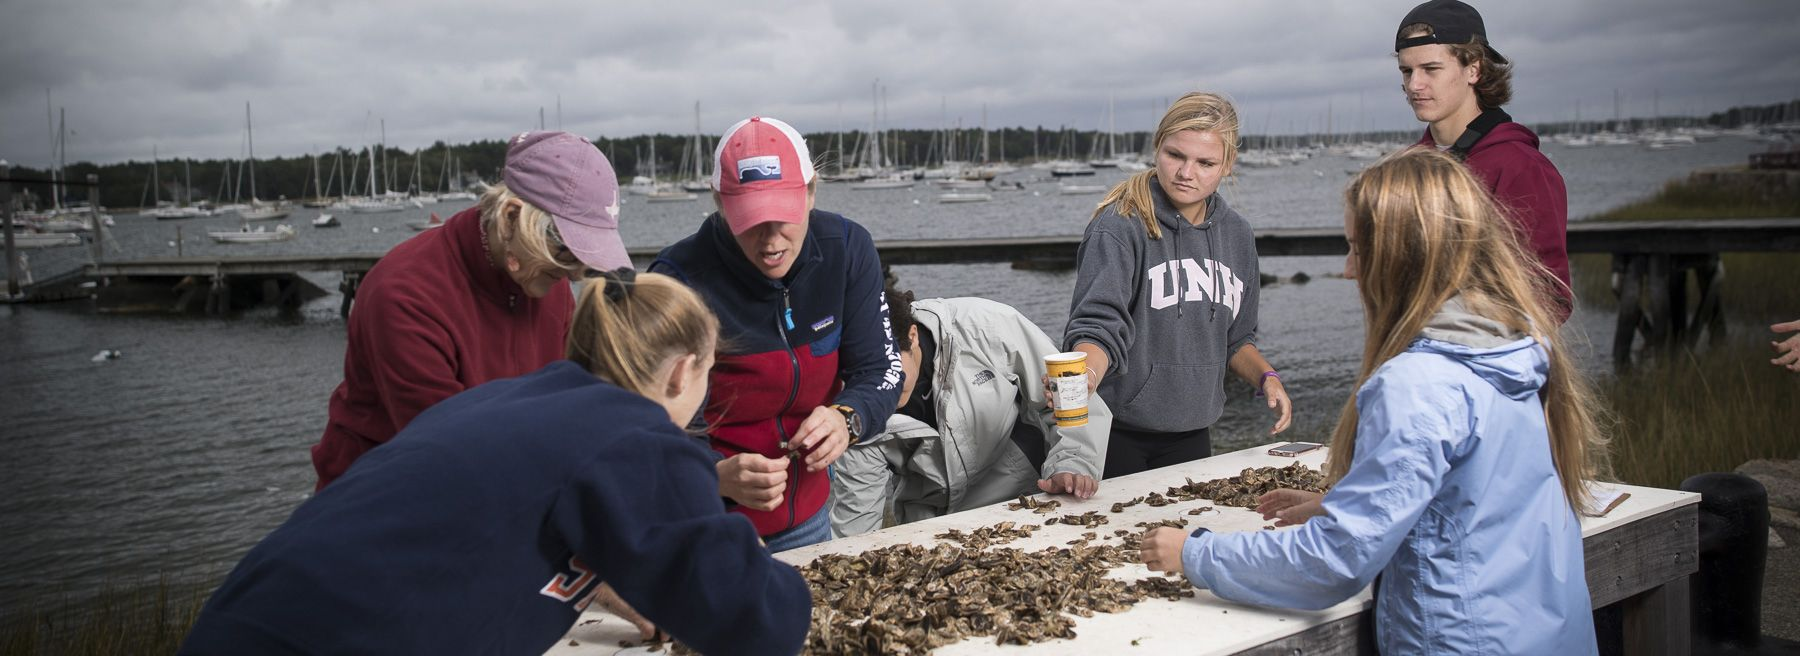 Student sort oysters by size at Tabor Academy's Oyster Farm on Sippican Harbor